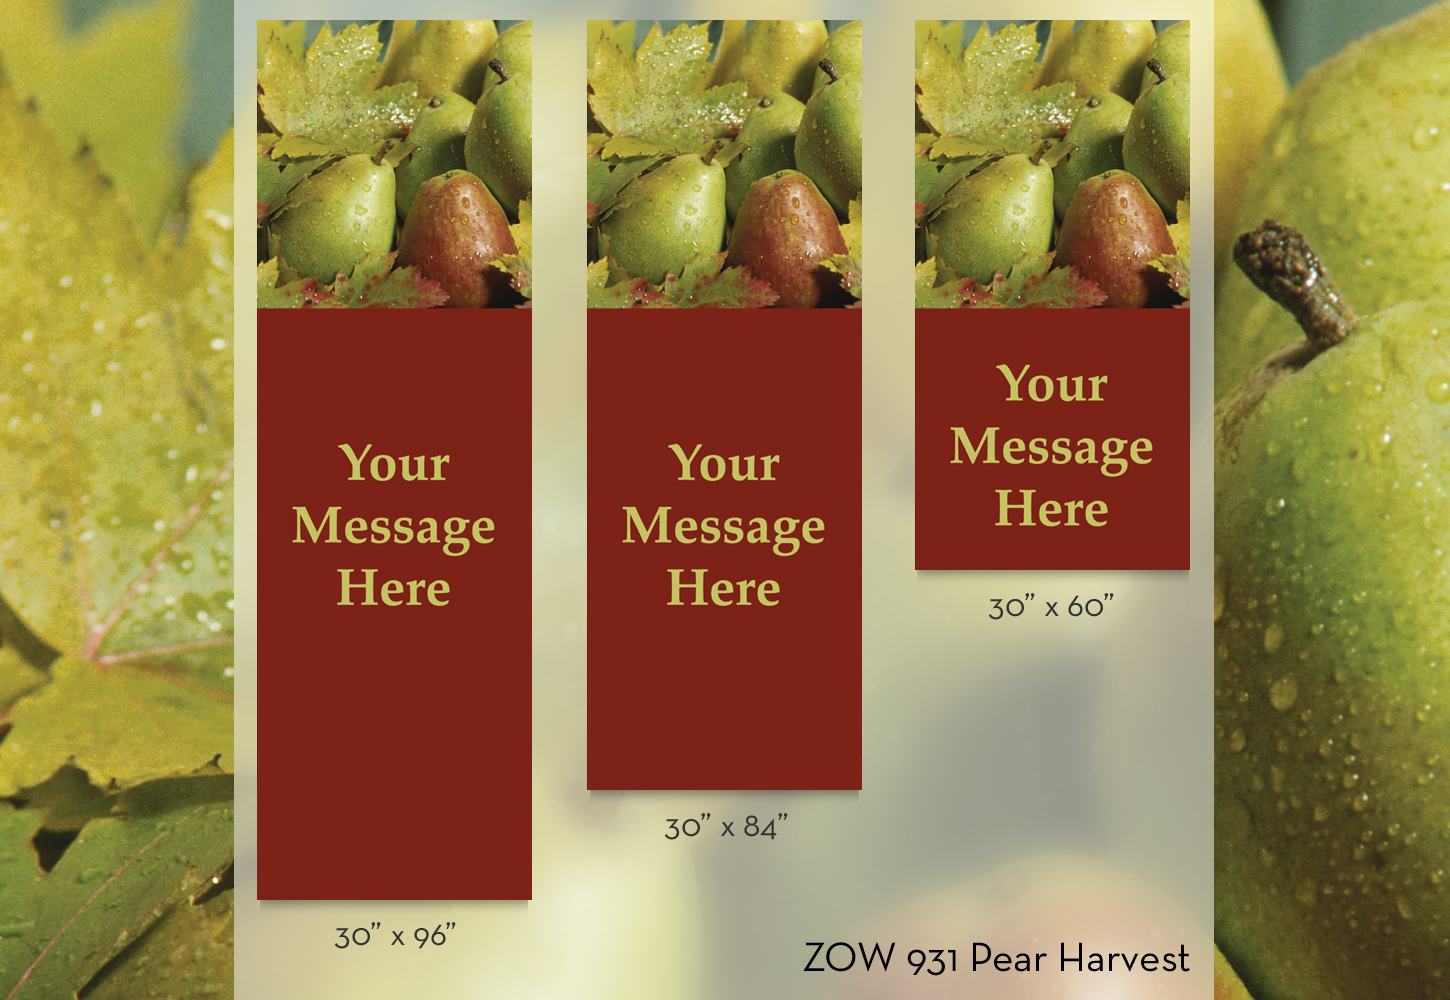 ZOW 931 Pear Harvest